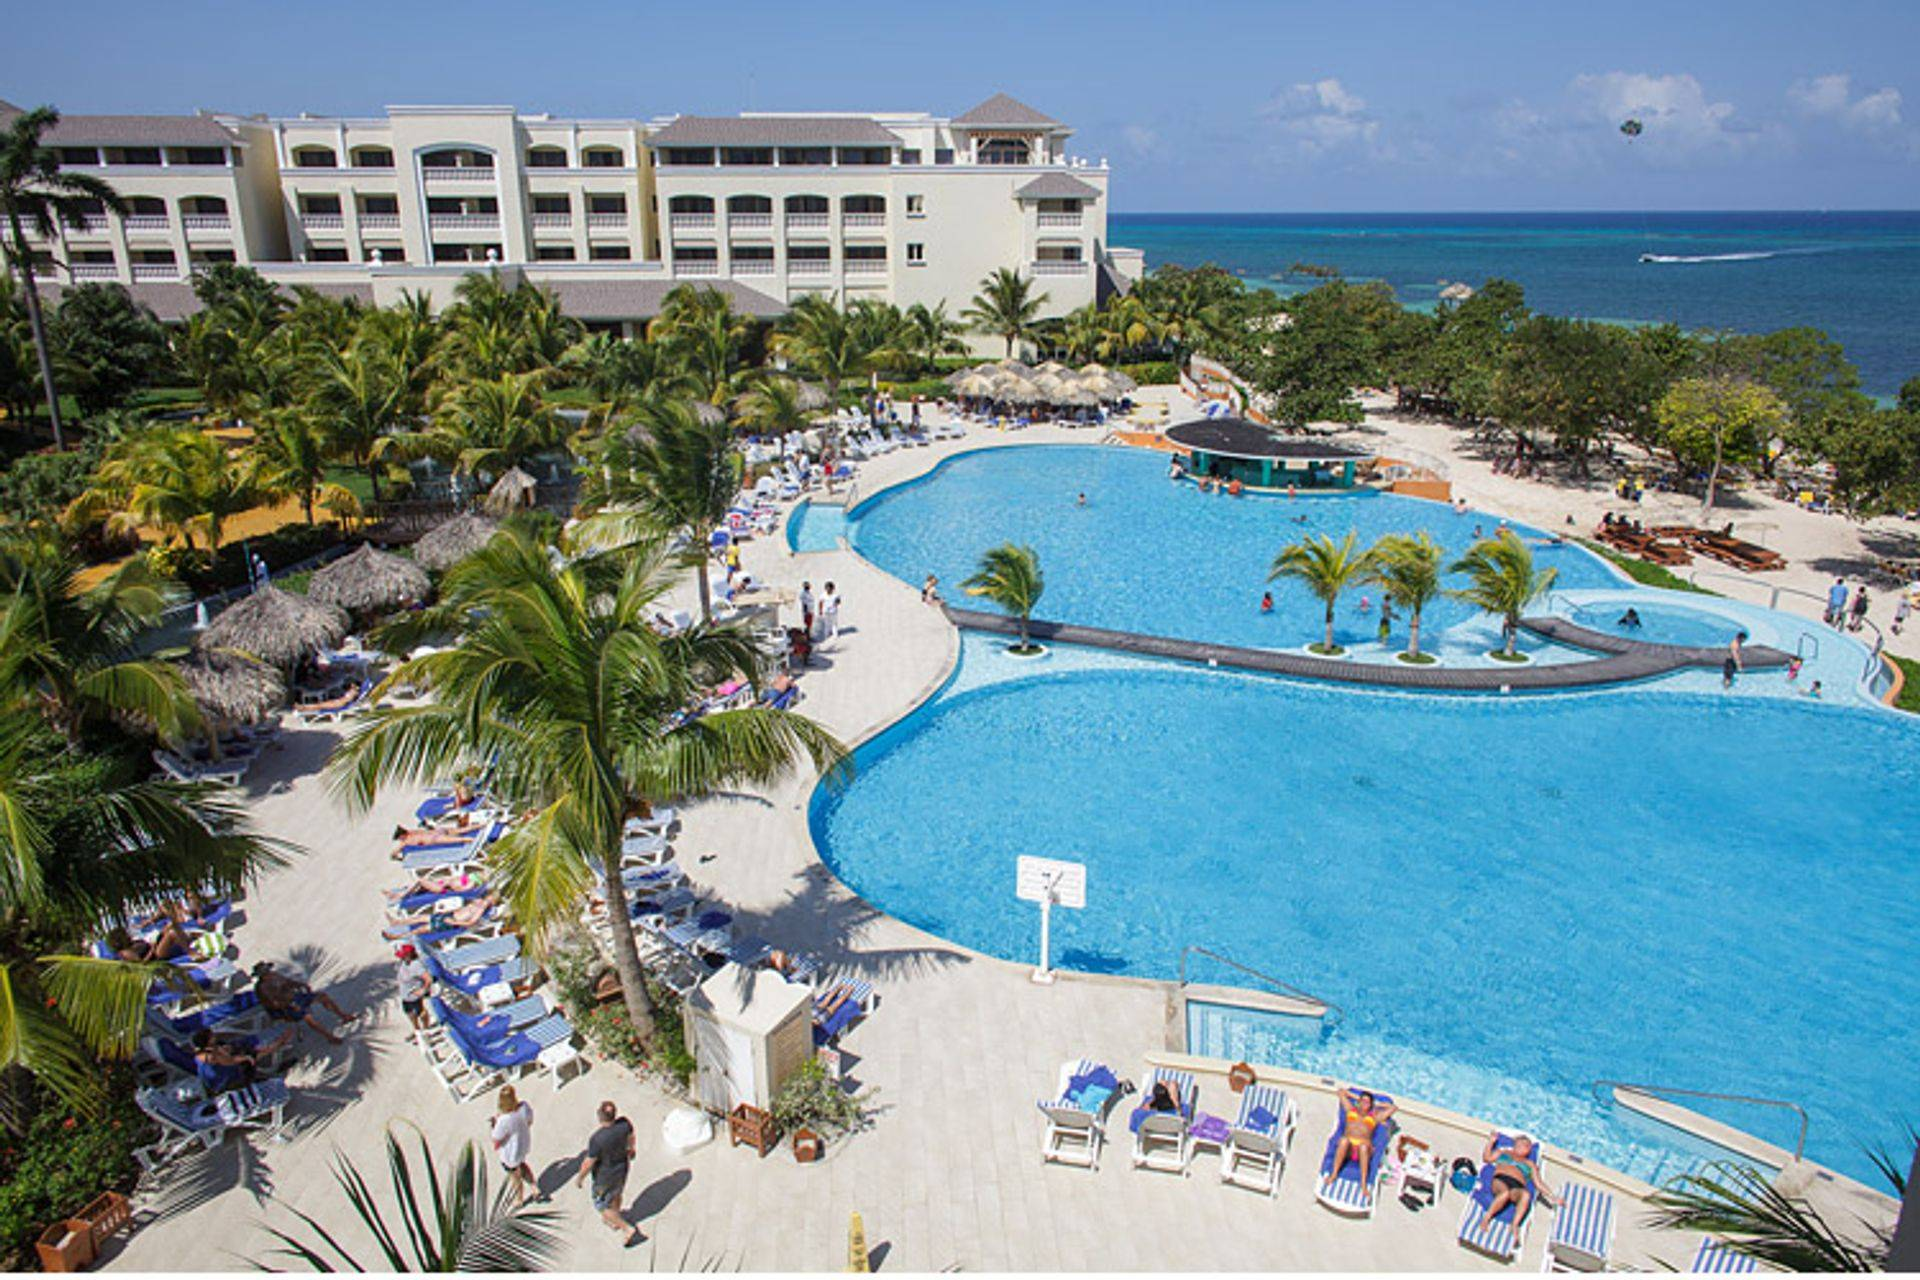 Iberostar Jamaica benefits from ECHOS risk management support